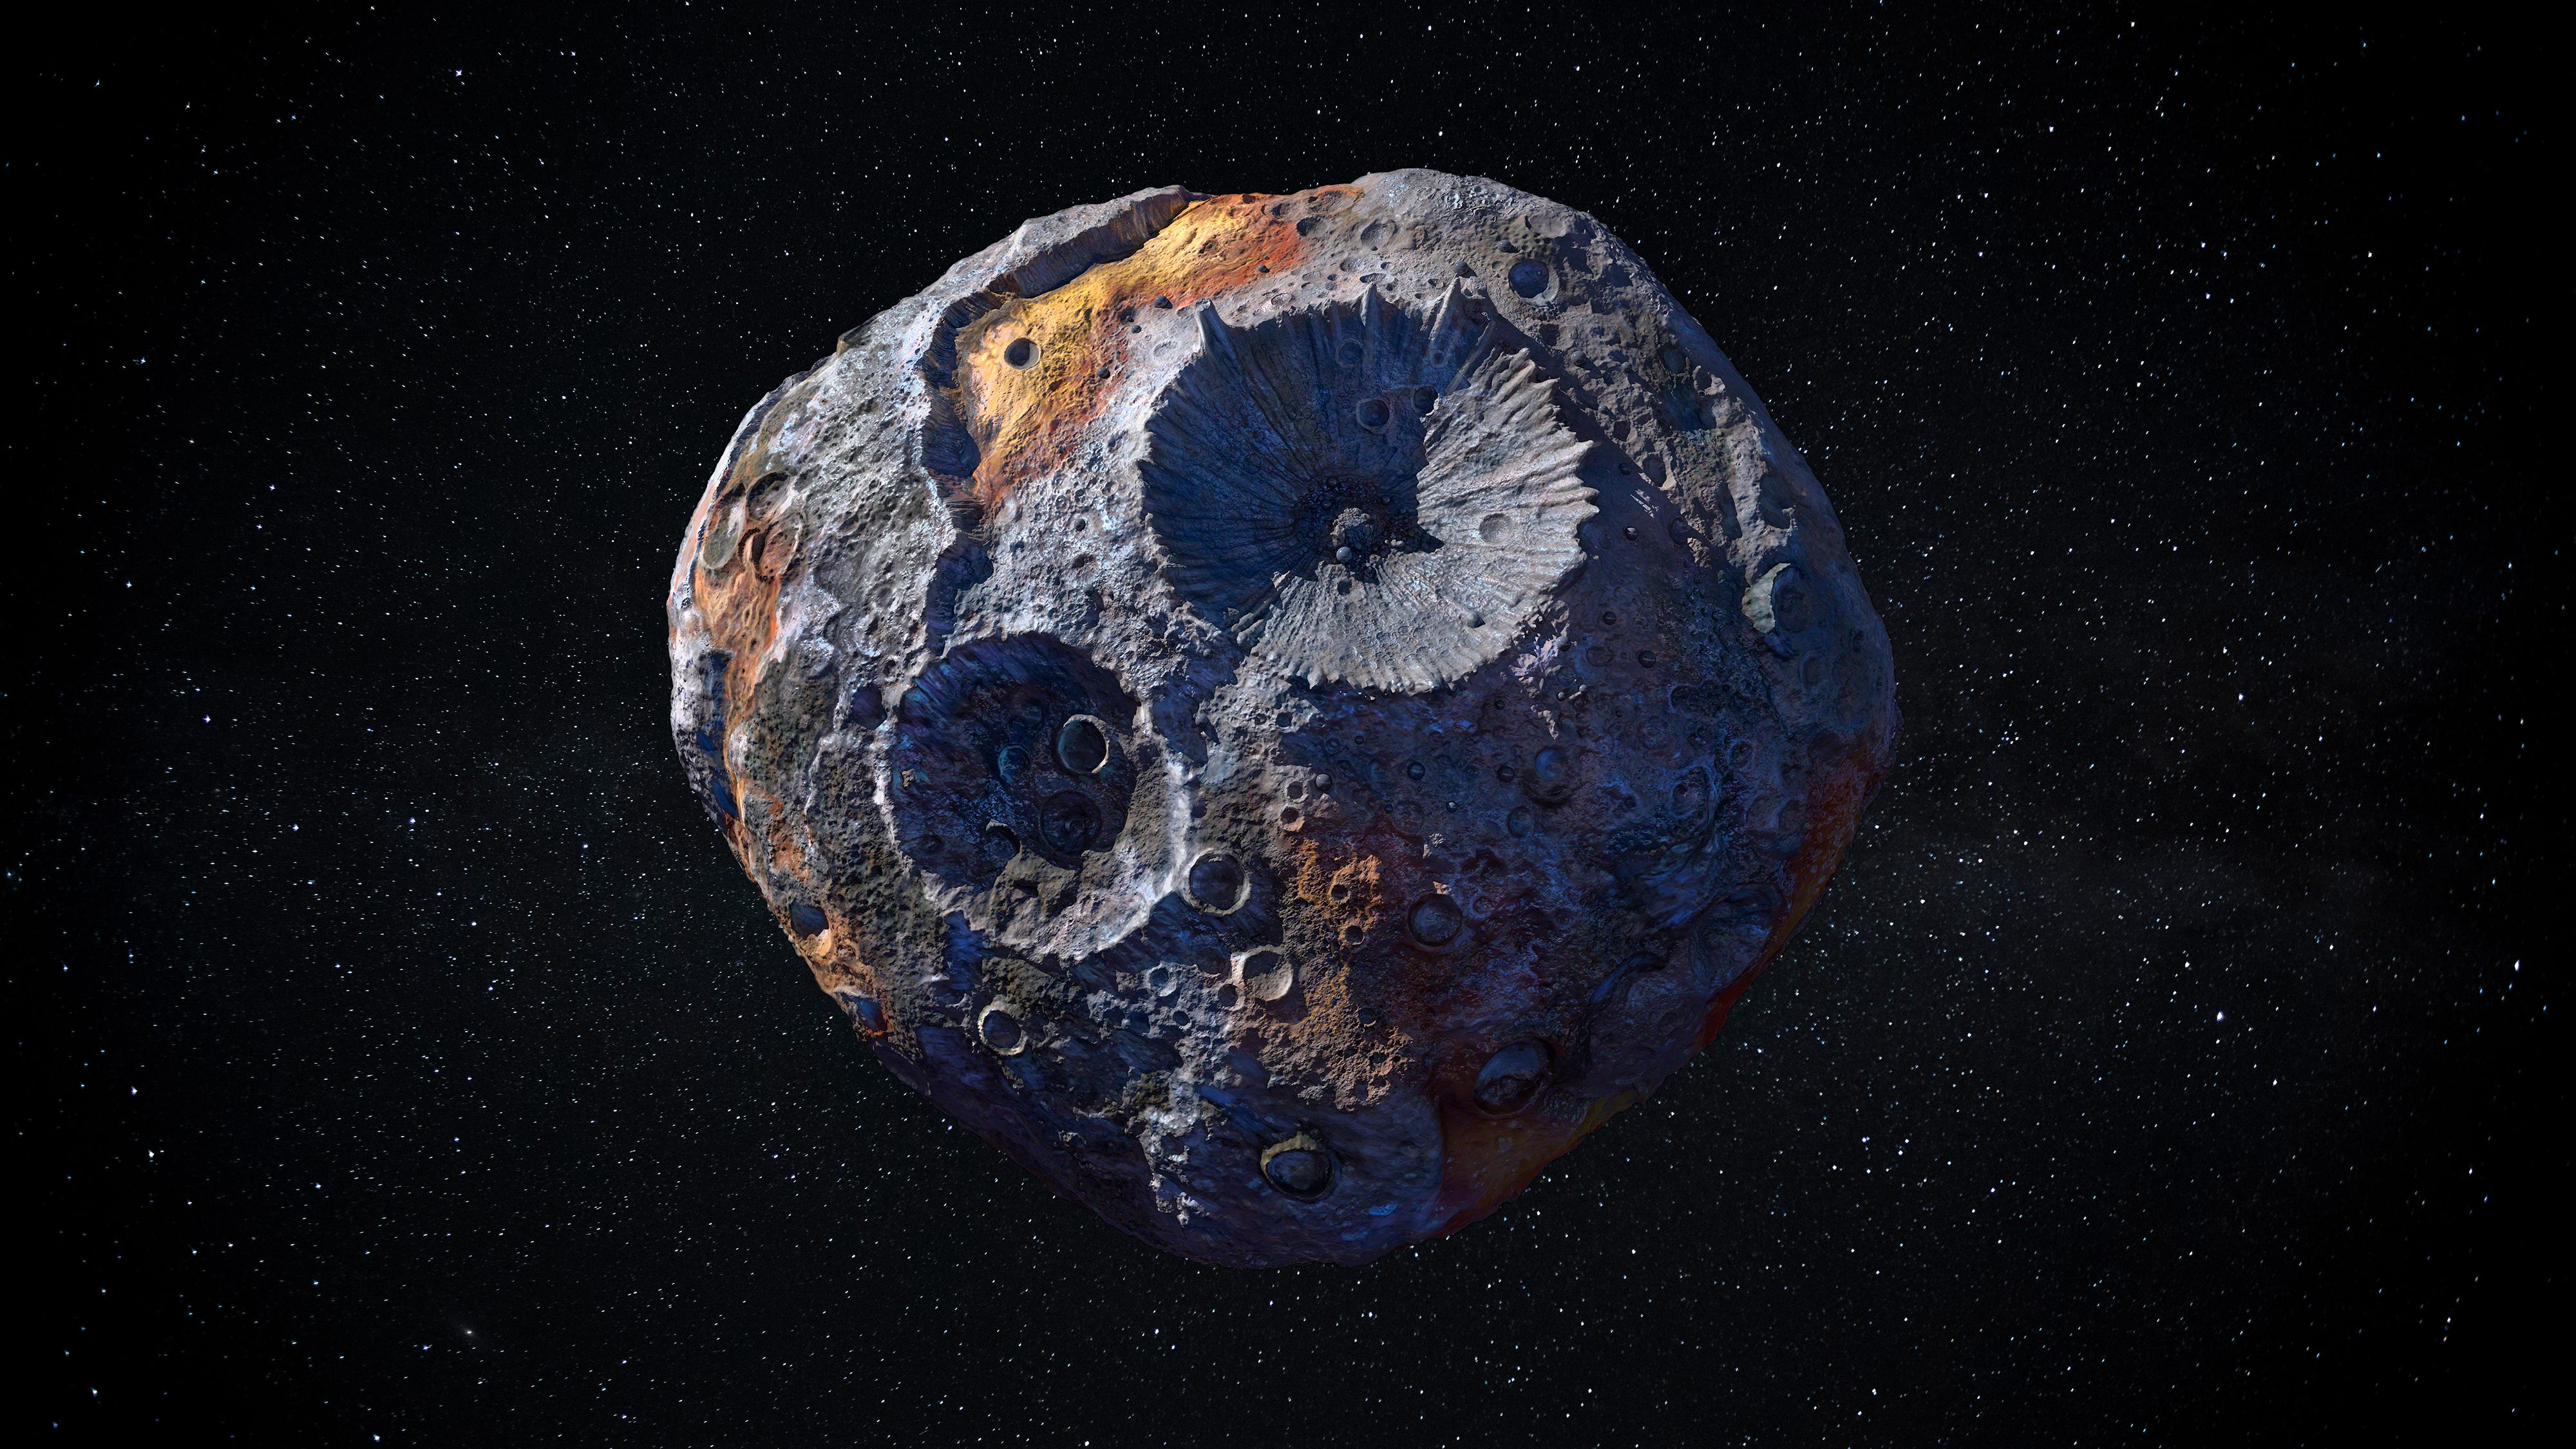 NASA to attempt redirecting asteroid by launching spacecraft towards it